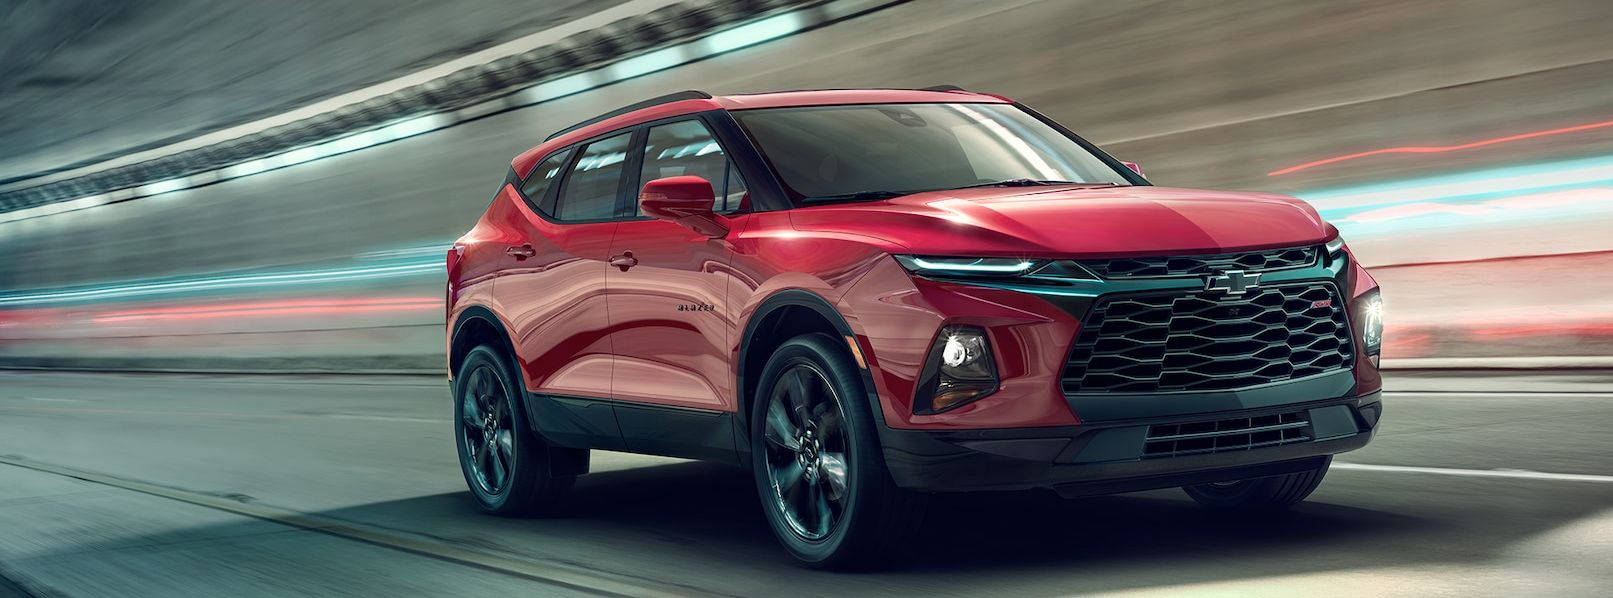 2019 Chevrolet Blazer for Sale near Flint, MI